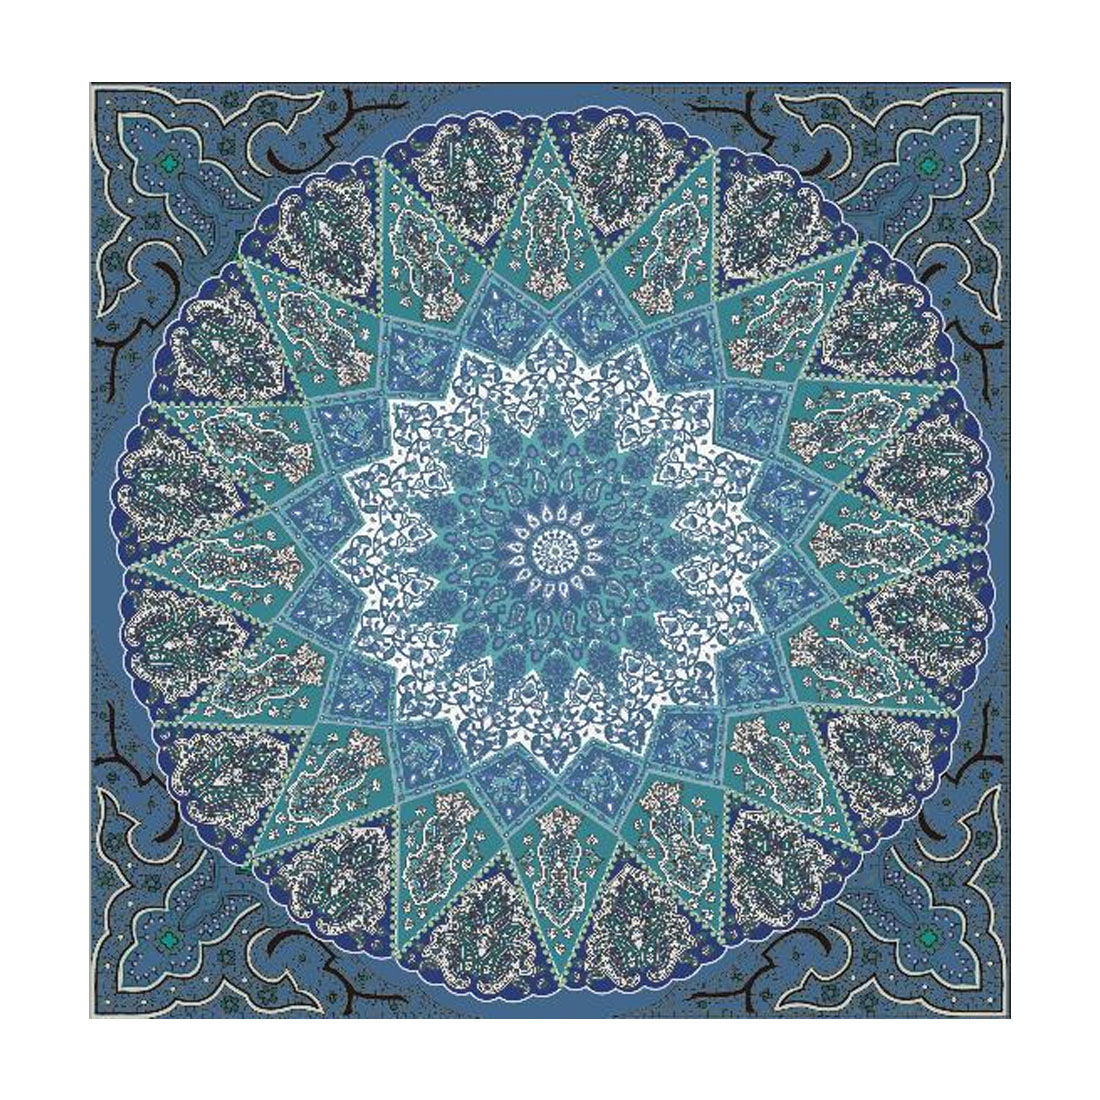 Foral India Tapestry peacock Printed Wall Decoration Blankets Carpet Mandala Tapestry Wall Hanging India Retail in Tapestry from Home Garden